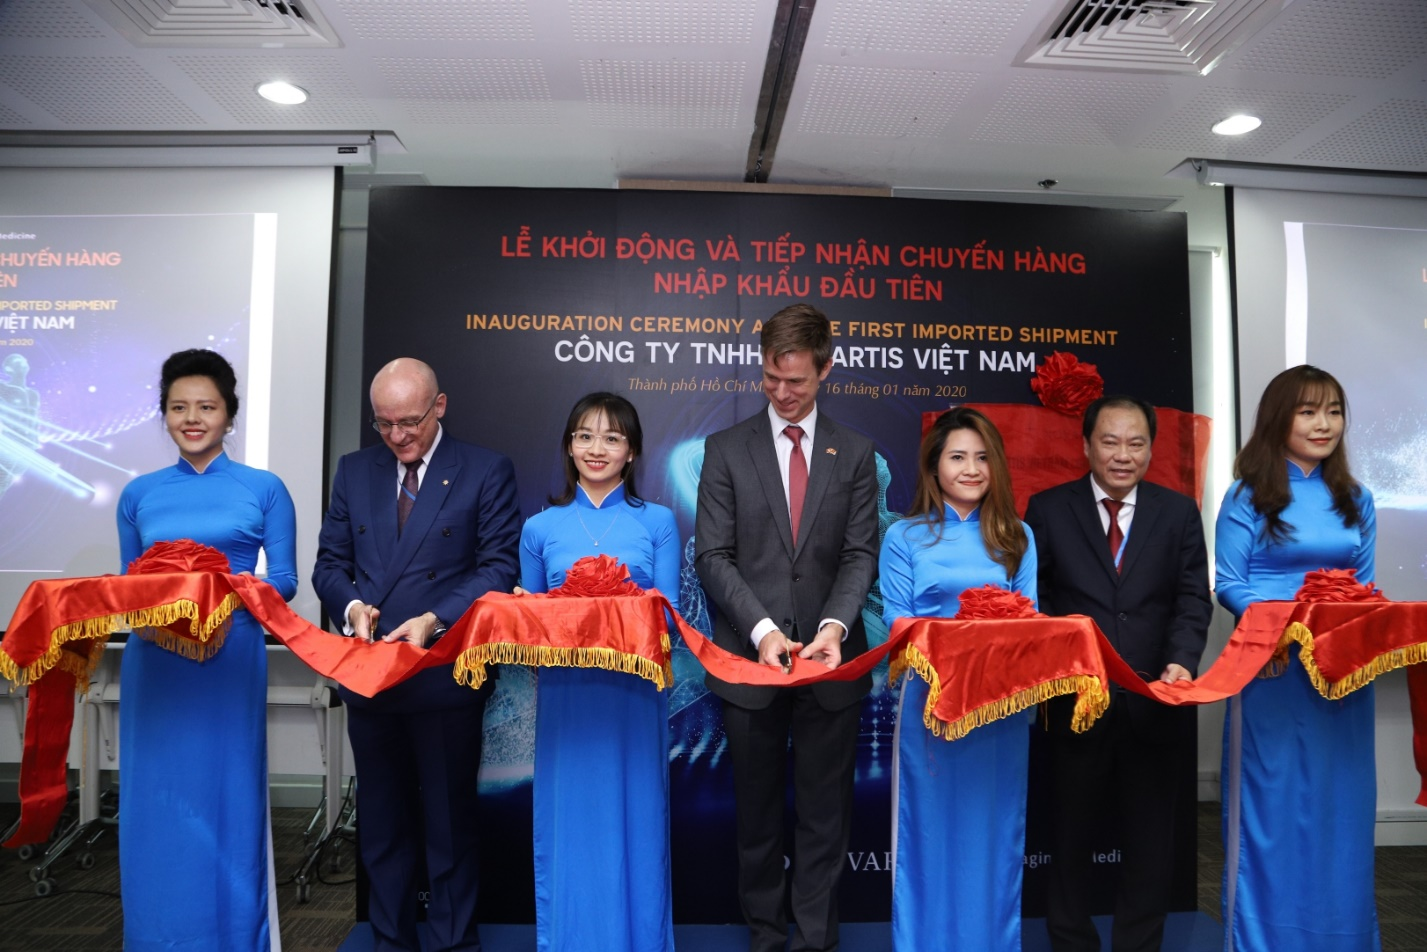 At the event, Novartis announced the arrival of the first import shipment of Novartis medicines at a port in Ho Chi Minh City.